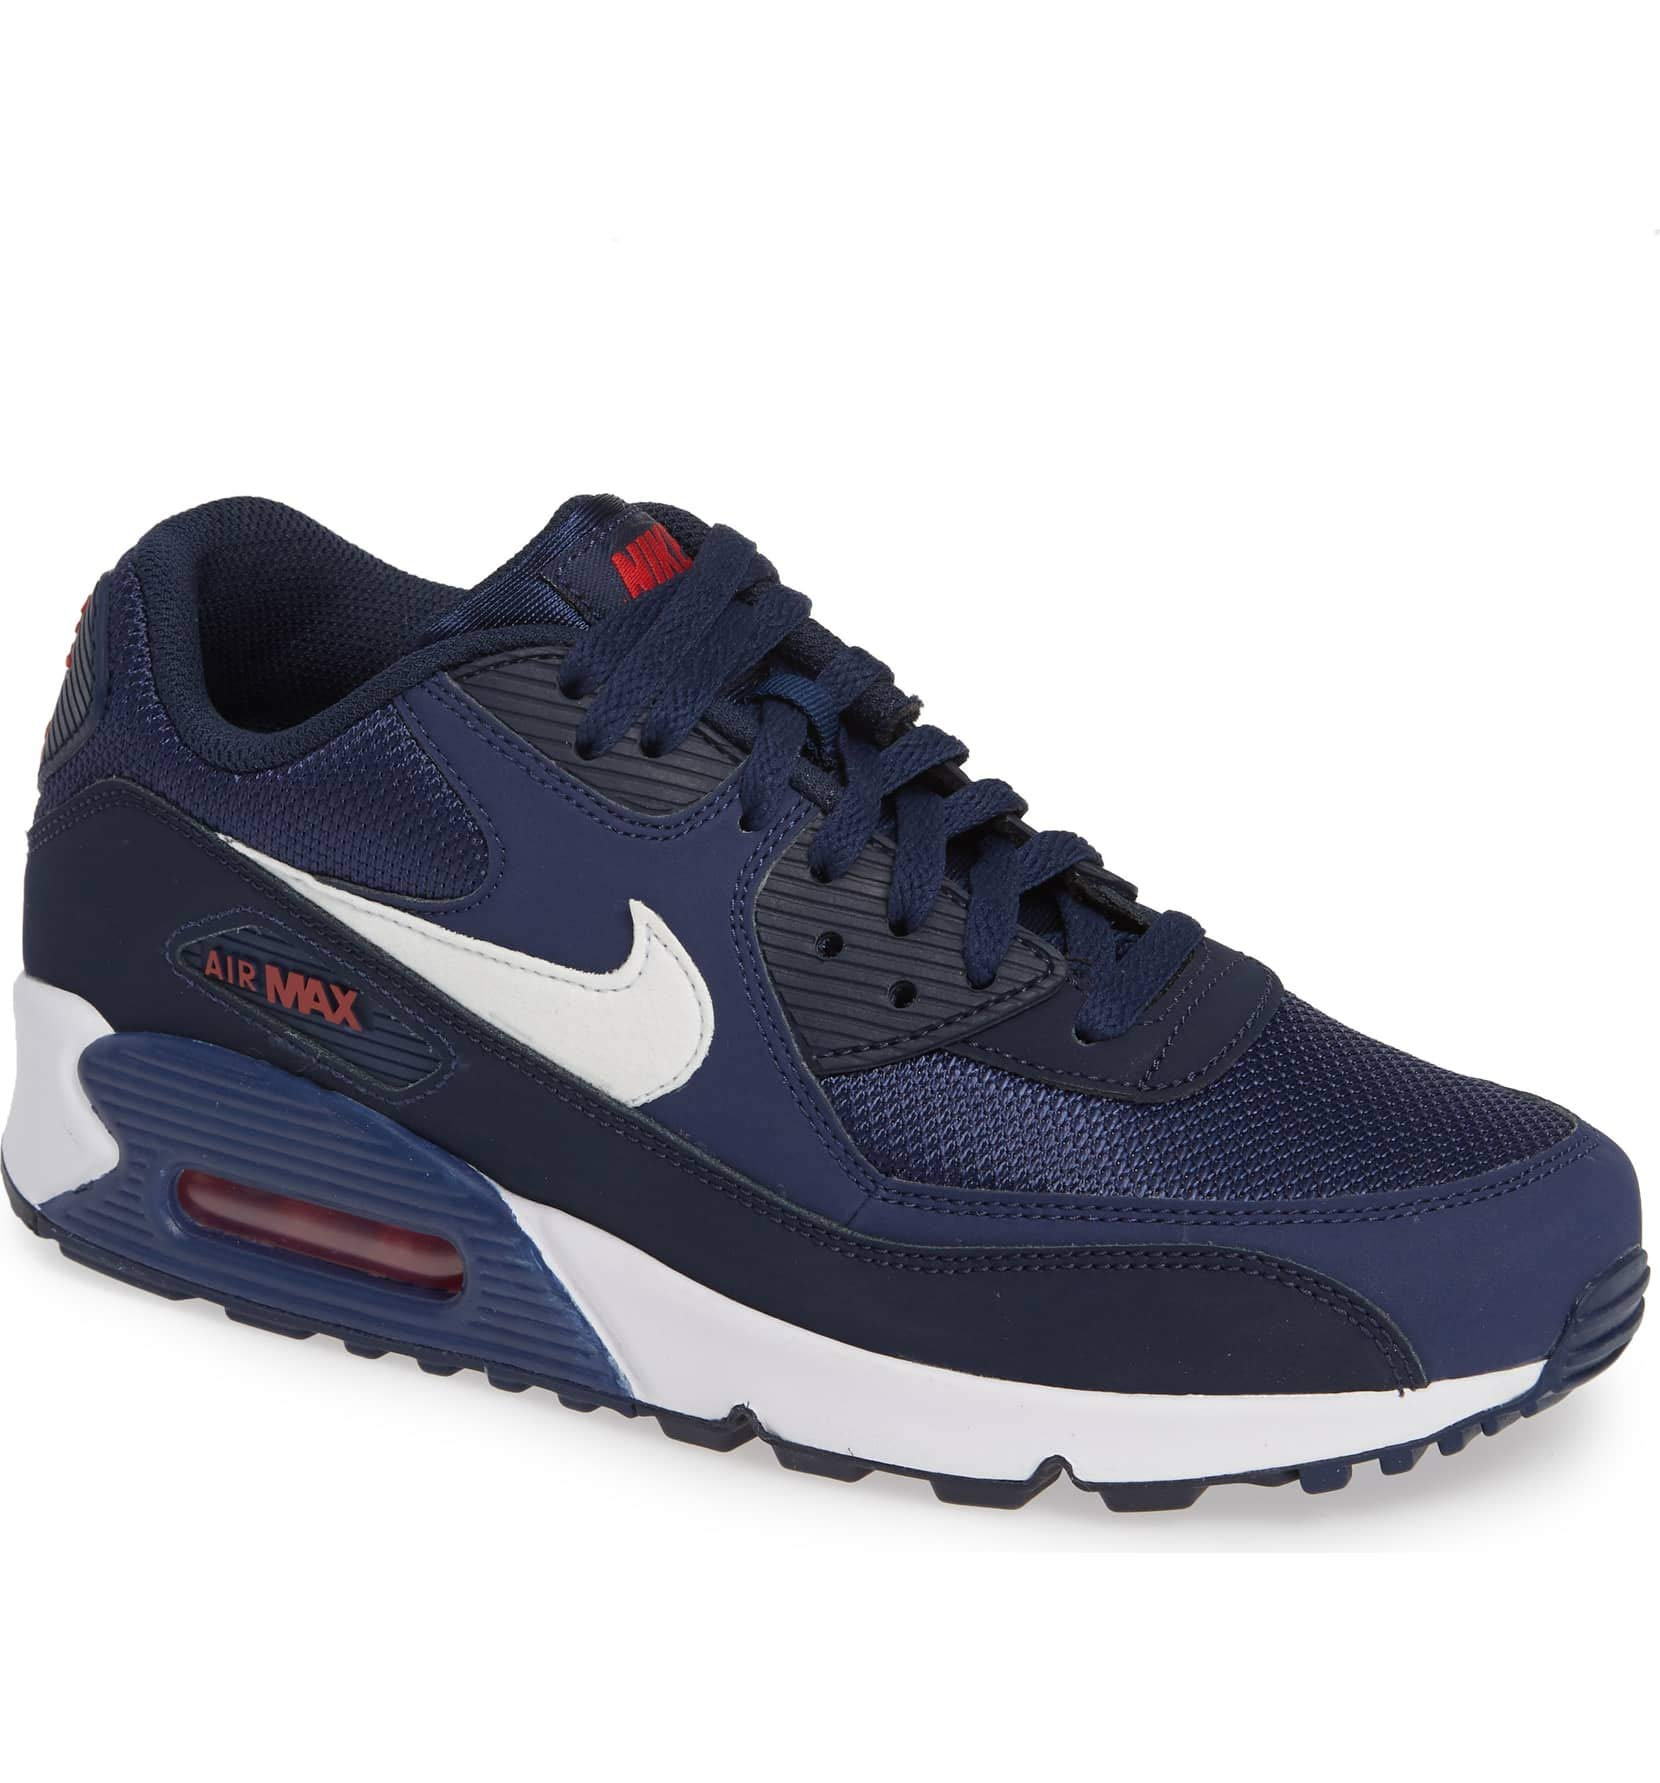 premium selection db48f faa12 Galleon - Nike Men s Air Max 90 Essential Shoe, Midnight  Navy White University Red, Size 7.5